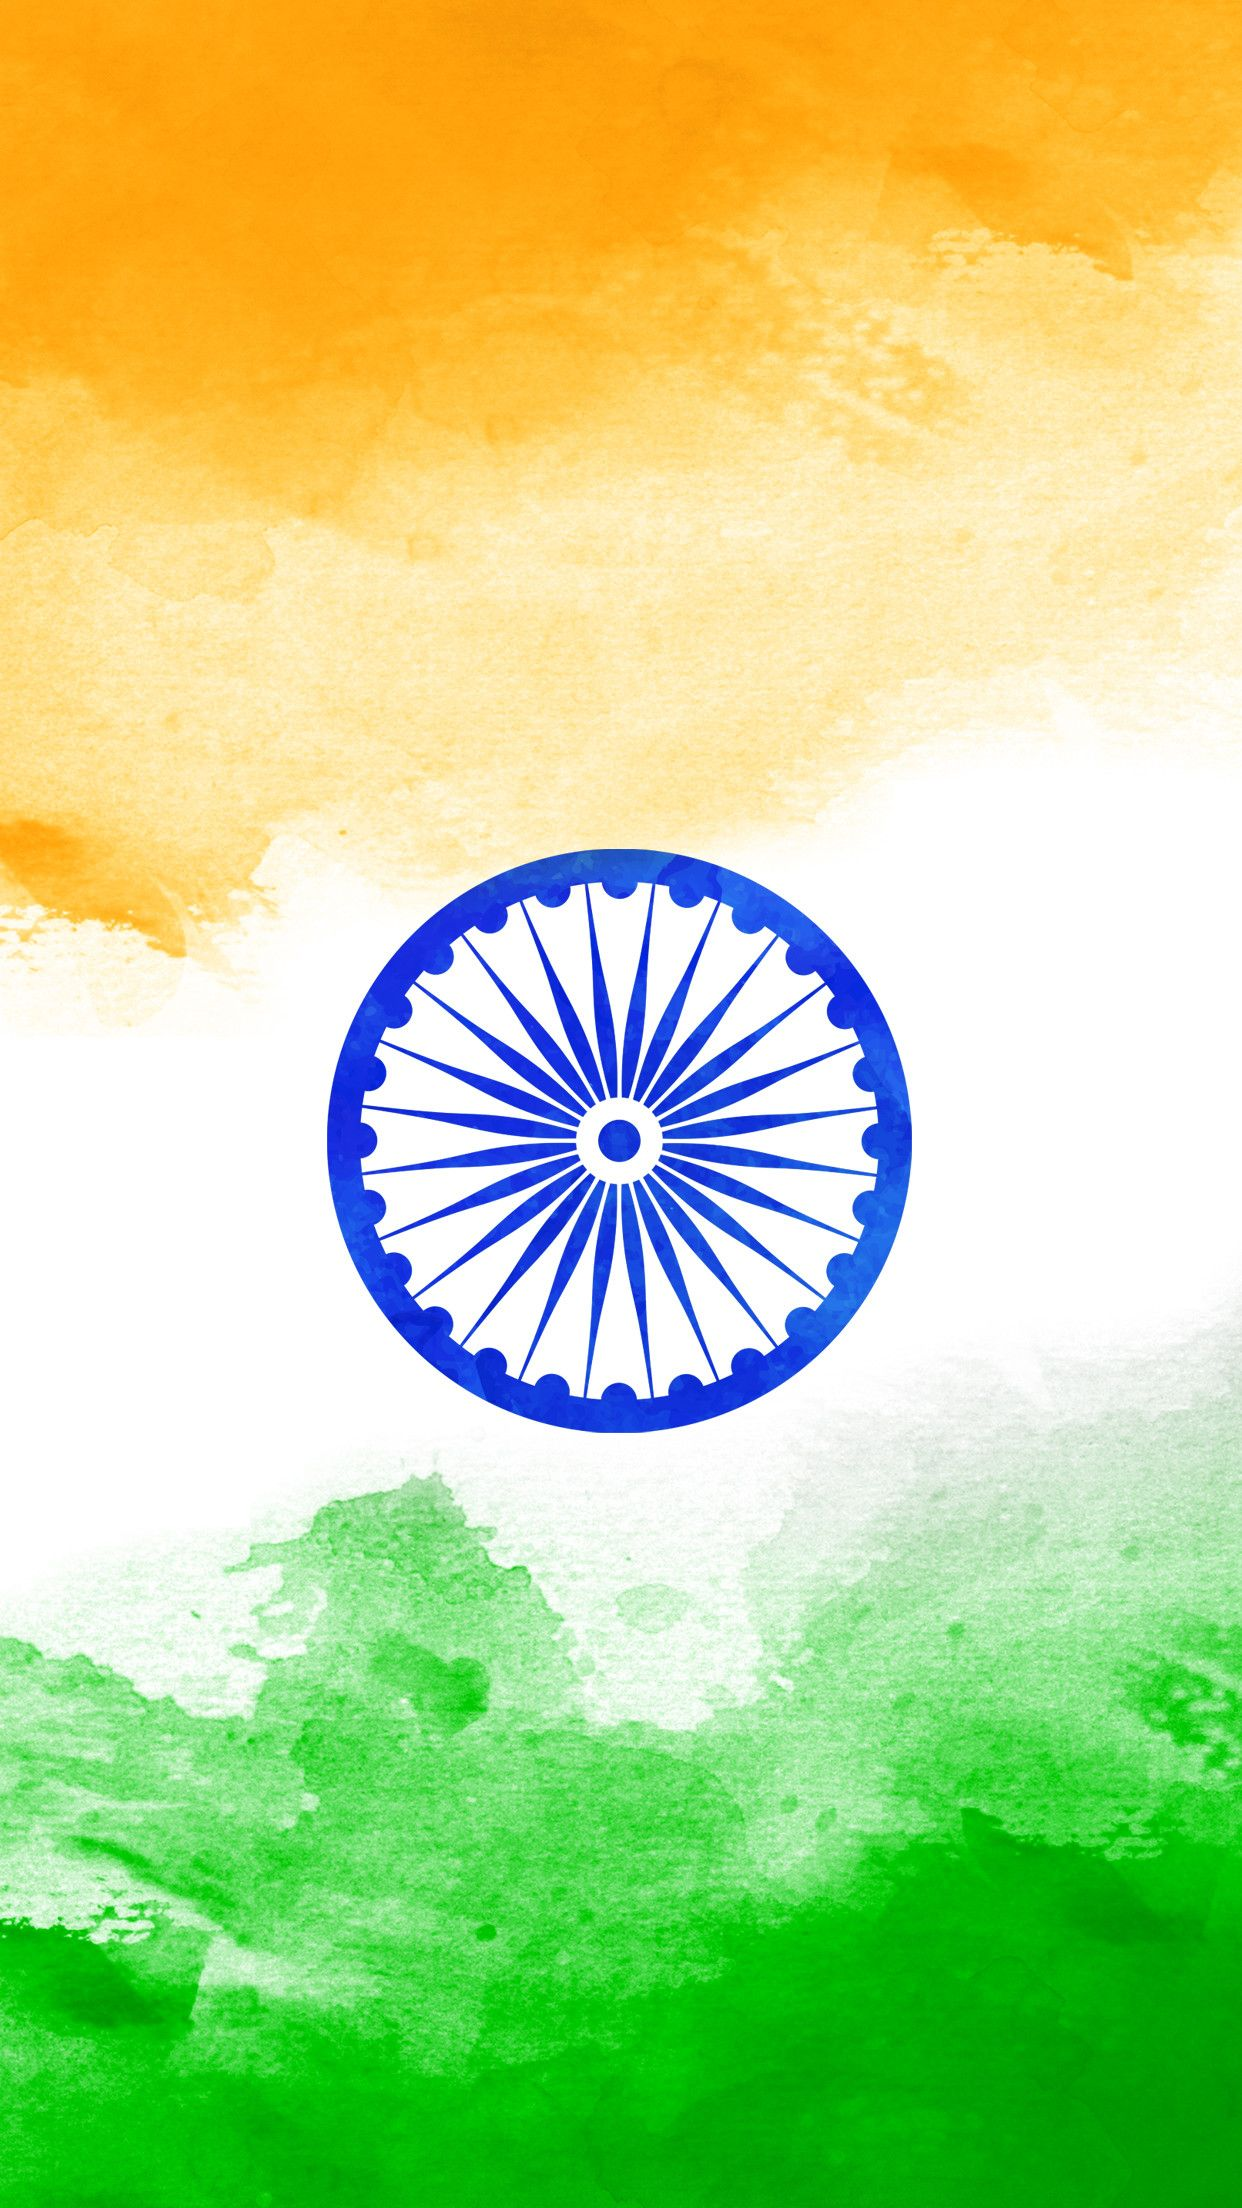 1242x2208 iPhone6 Plus 1242 Ã 2208 ... | Indian flag ...